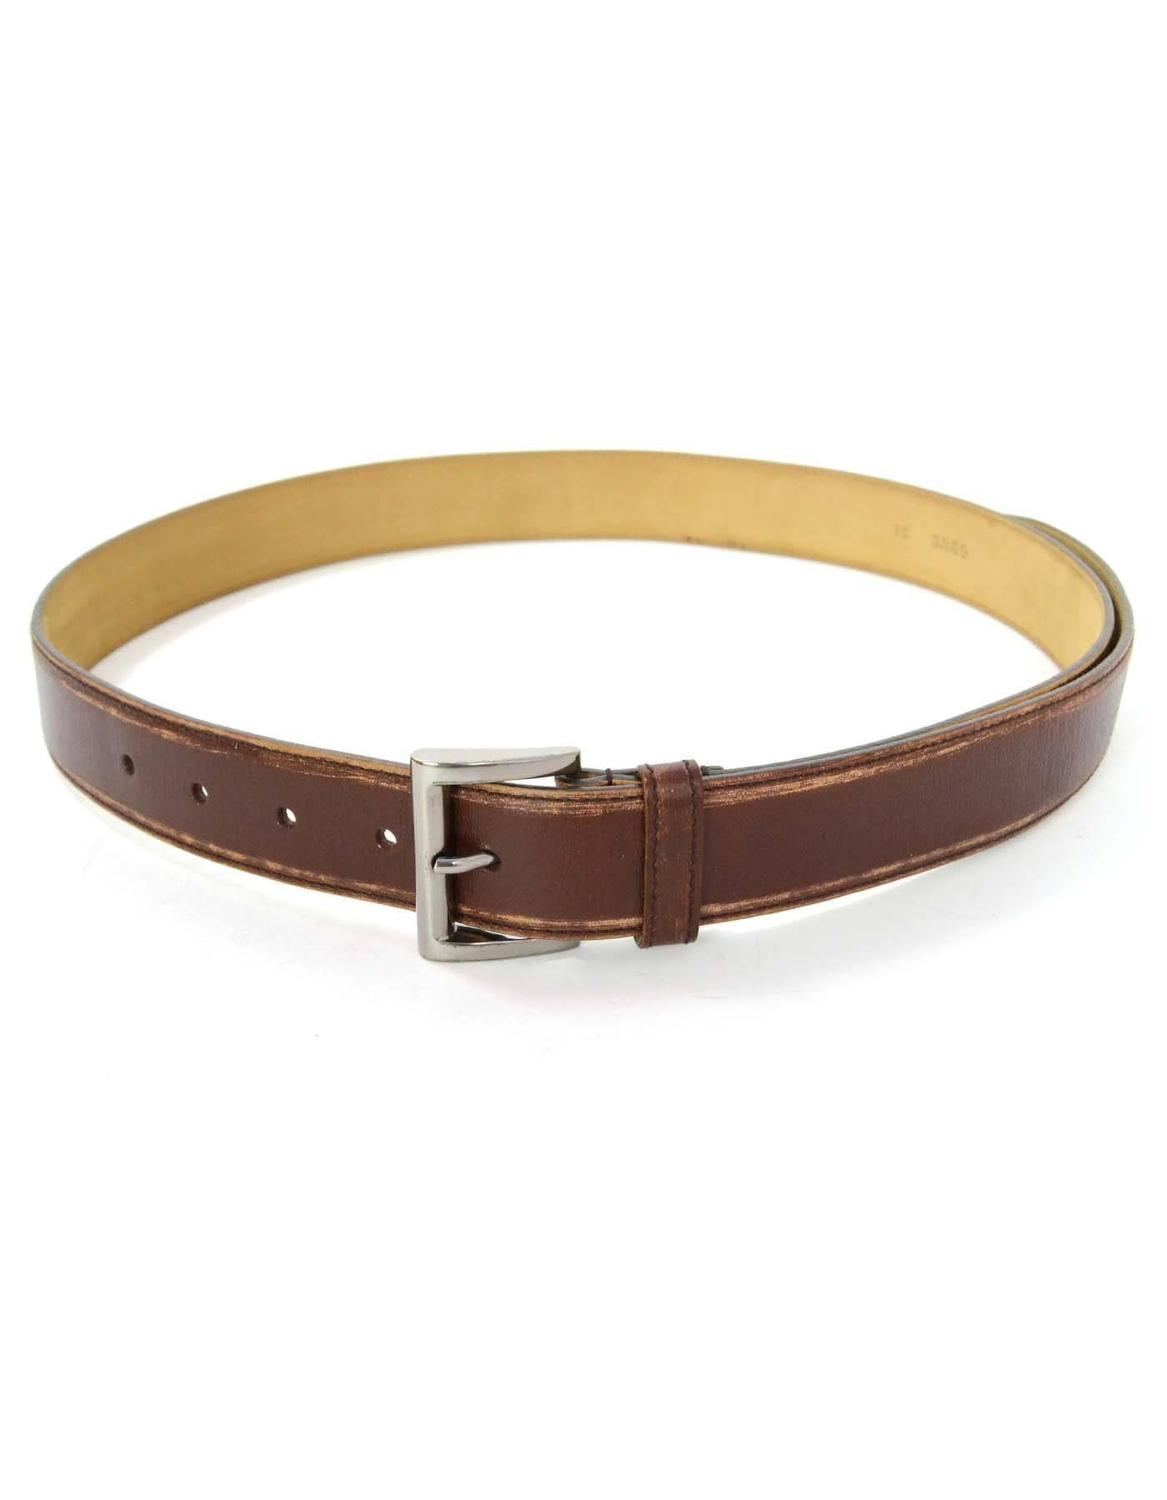 prada brown distressed leather belt sz 85 ghw for sale at